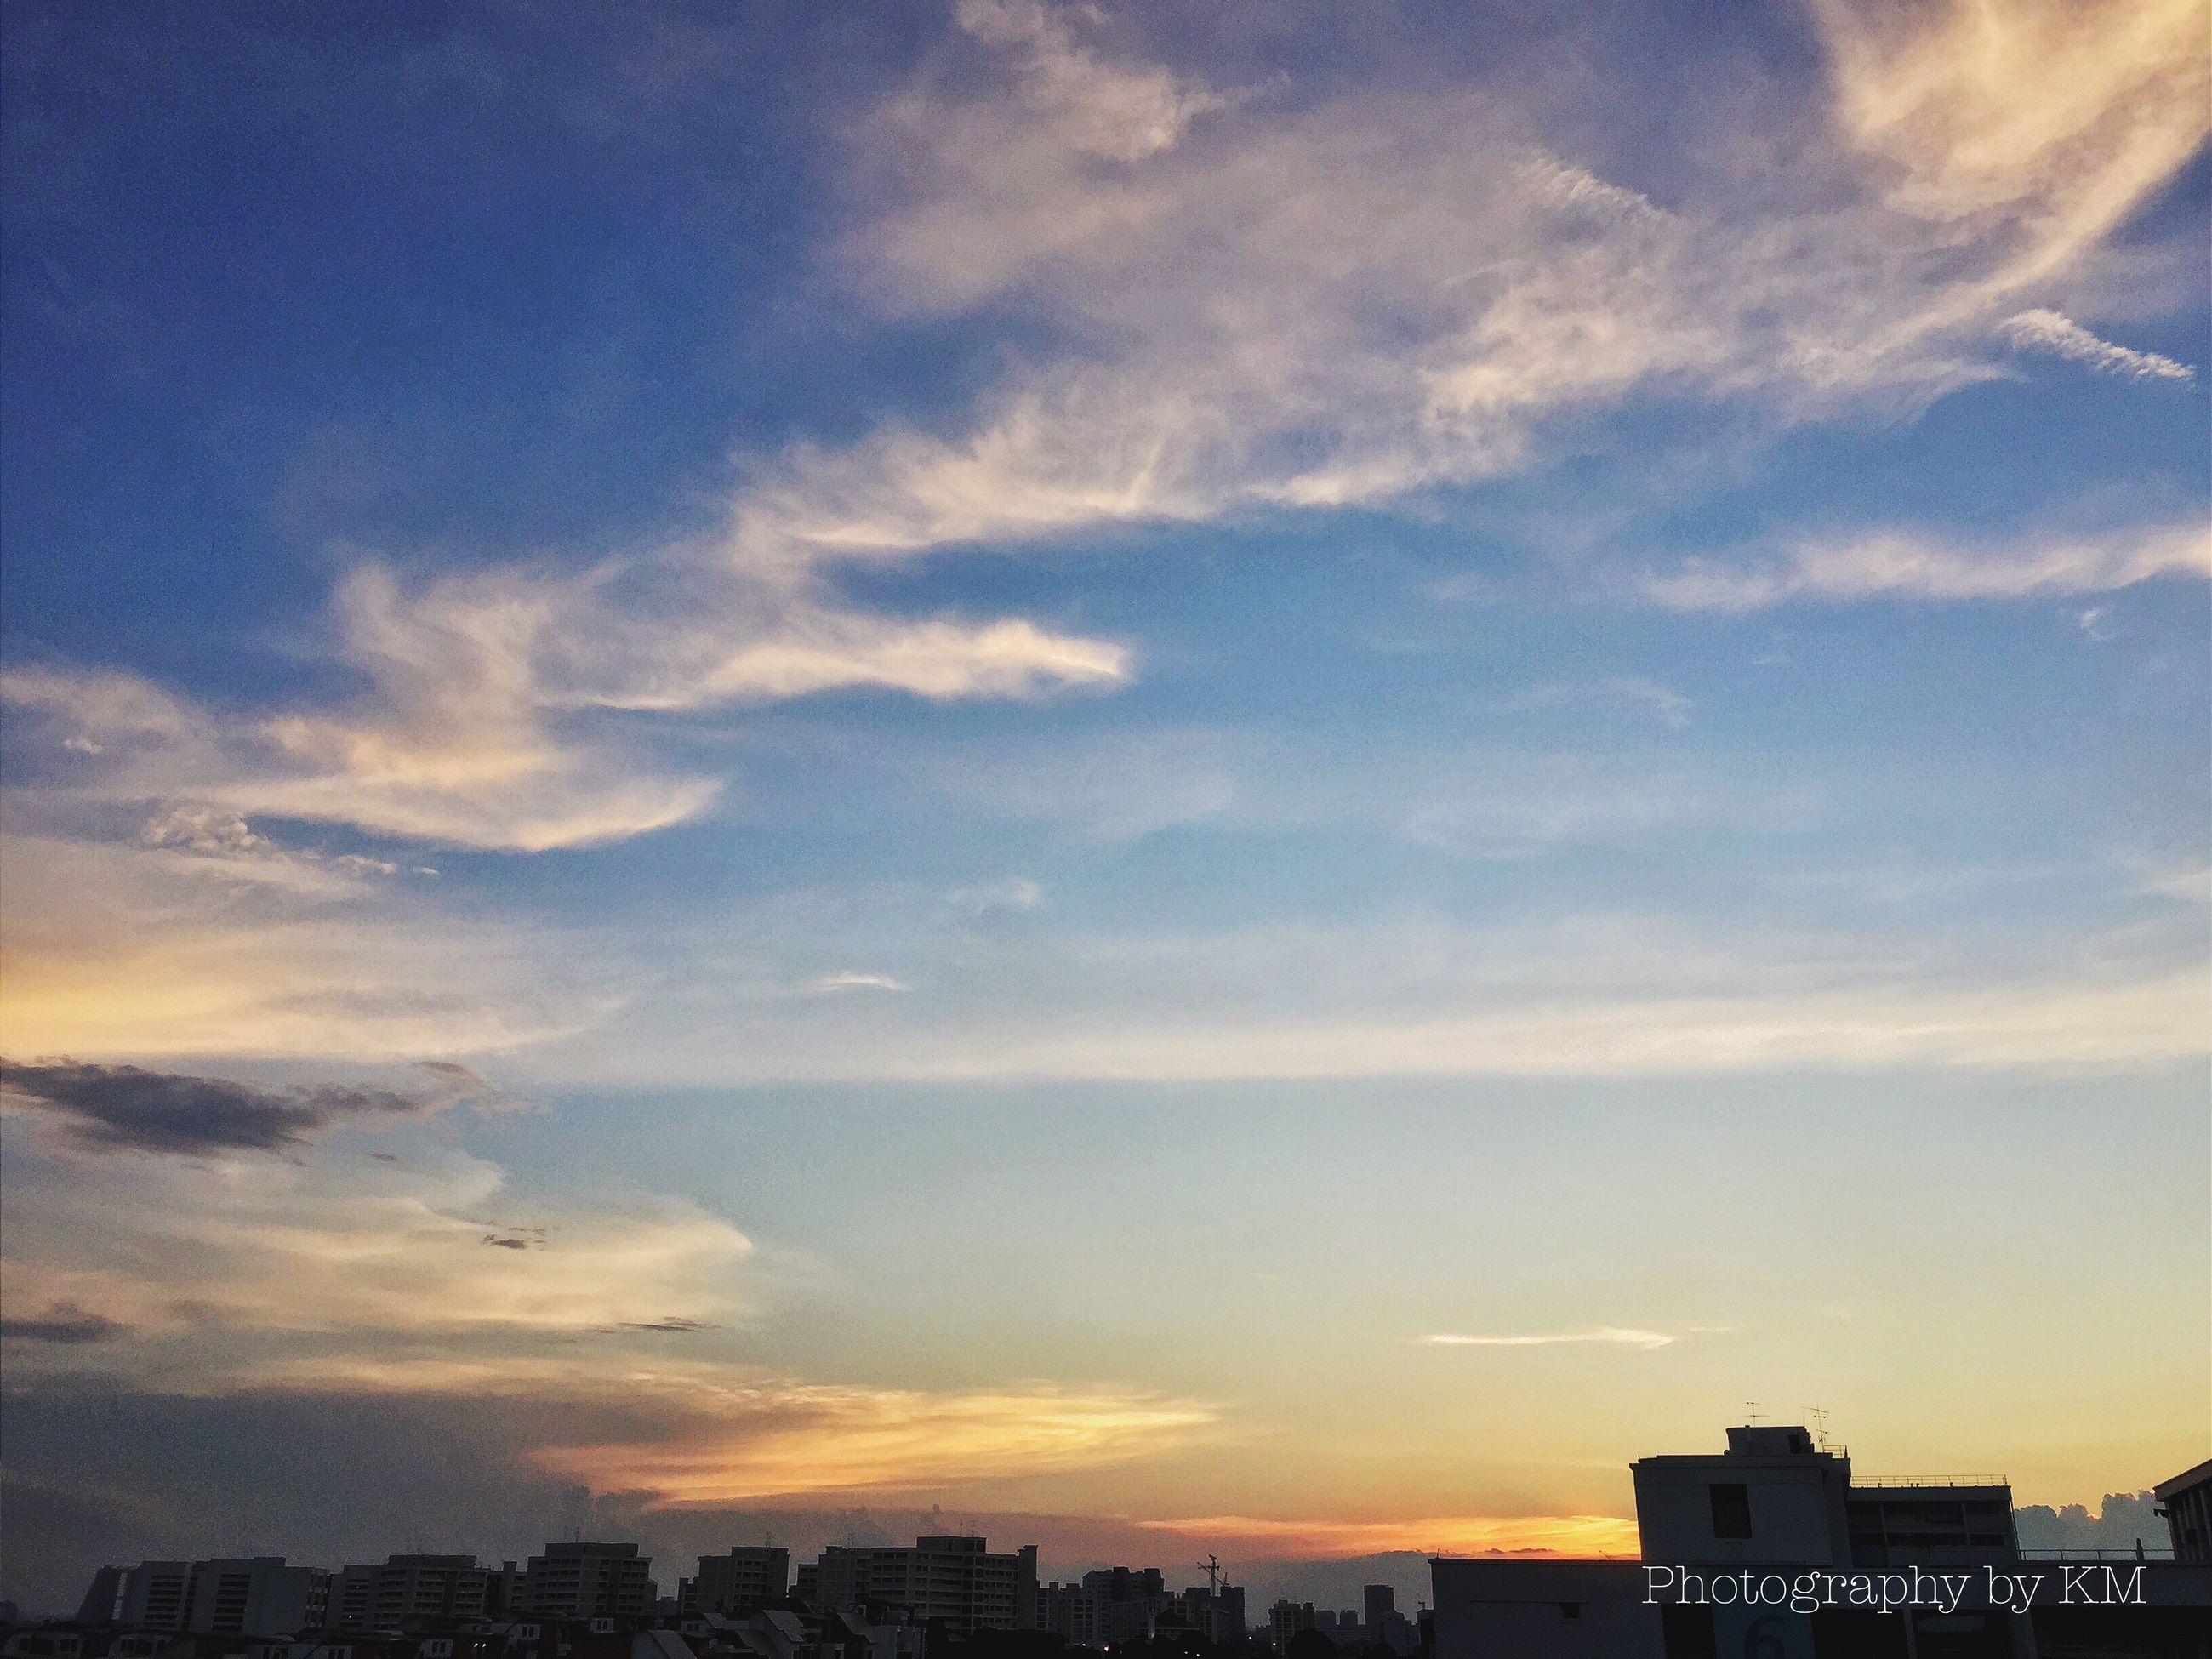 building exterior, architecture, built structure, sunset, sky, city, cityscape, cloud - sky, residential structure, residential building, residential district, orange color, house, cloud, building, outdoors, beauty in nature, nature, scenics, no people